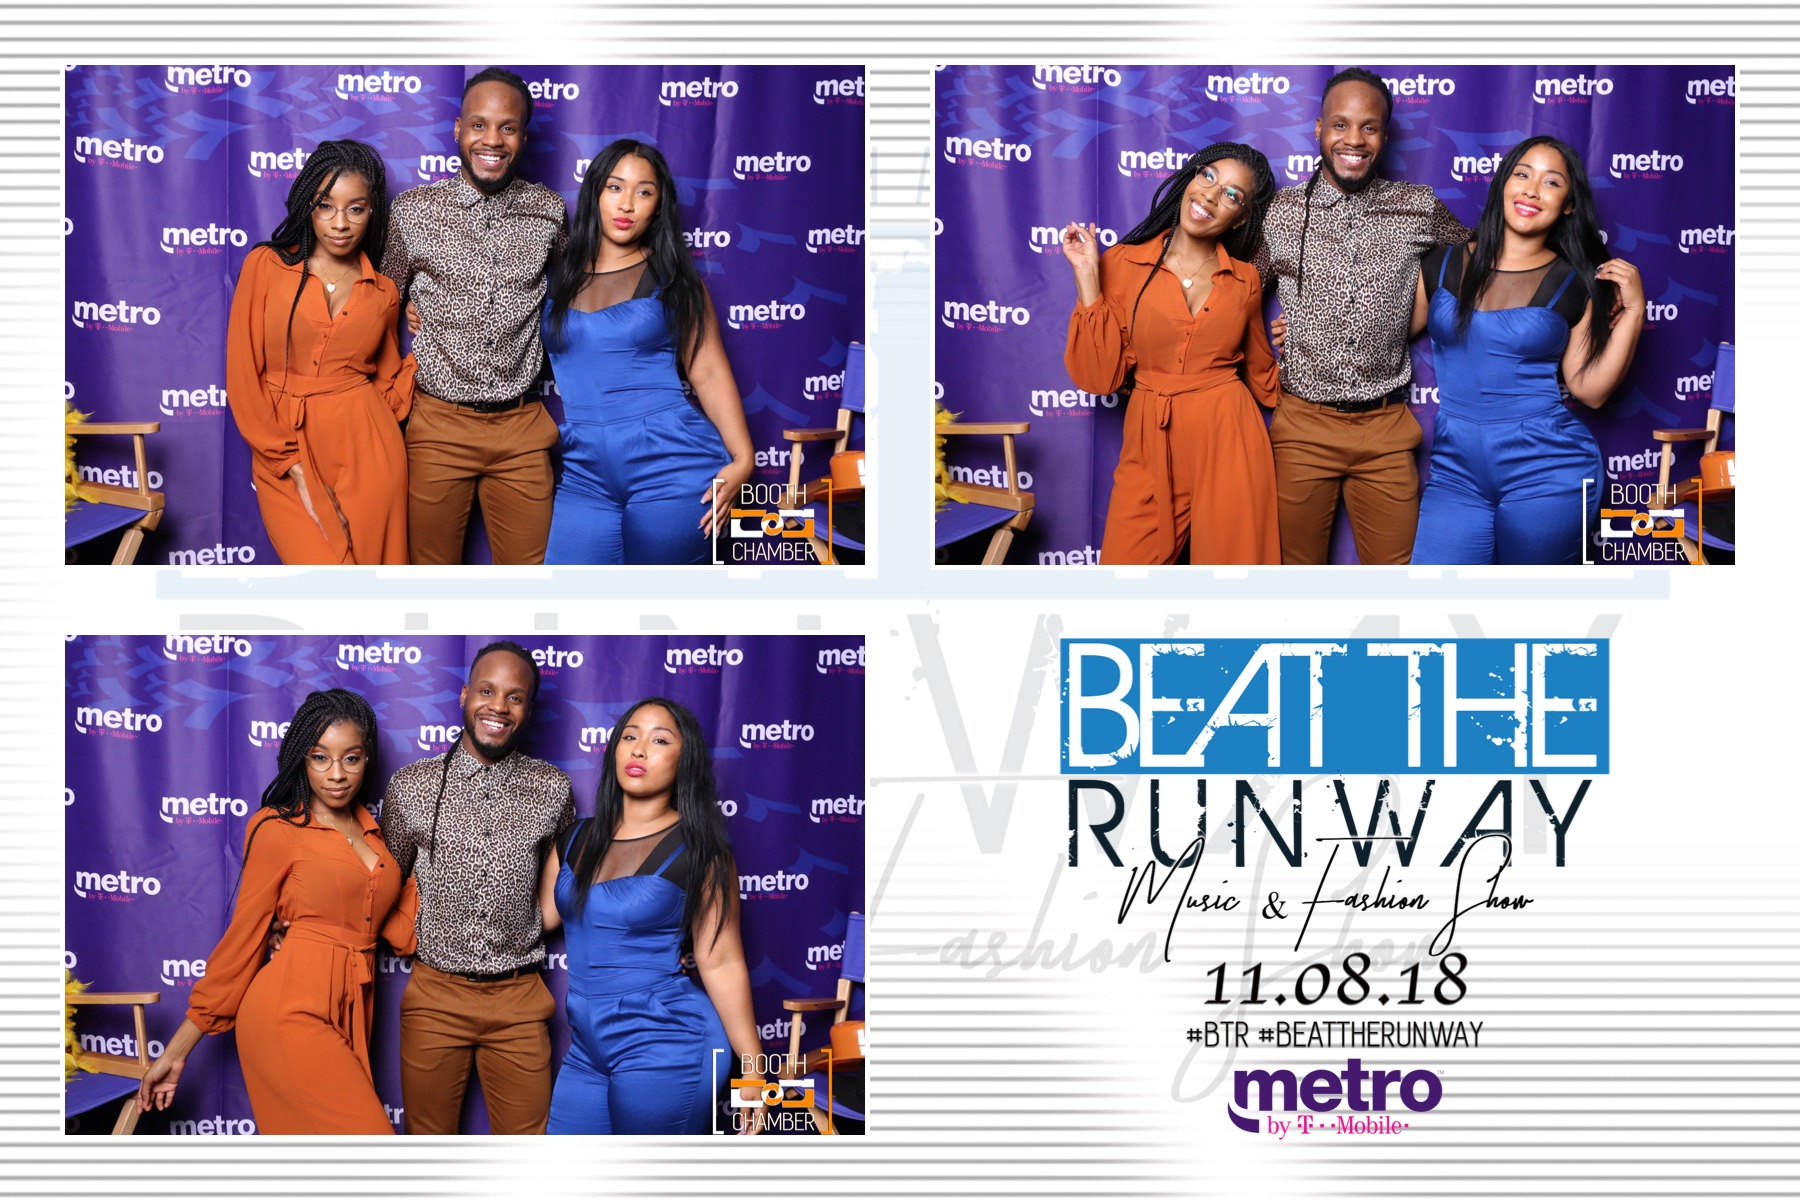 Booth Chamber Photo Booth Beat the Runway Antoine Hart 20181108_1 (1).jpeg